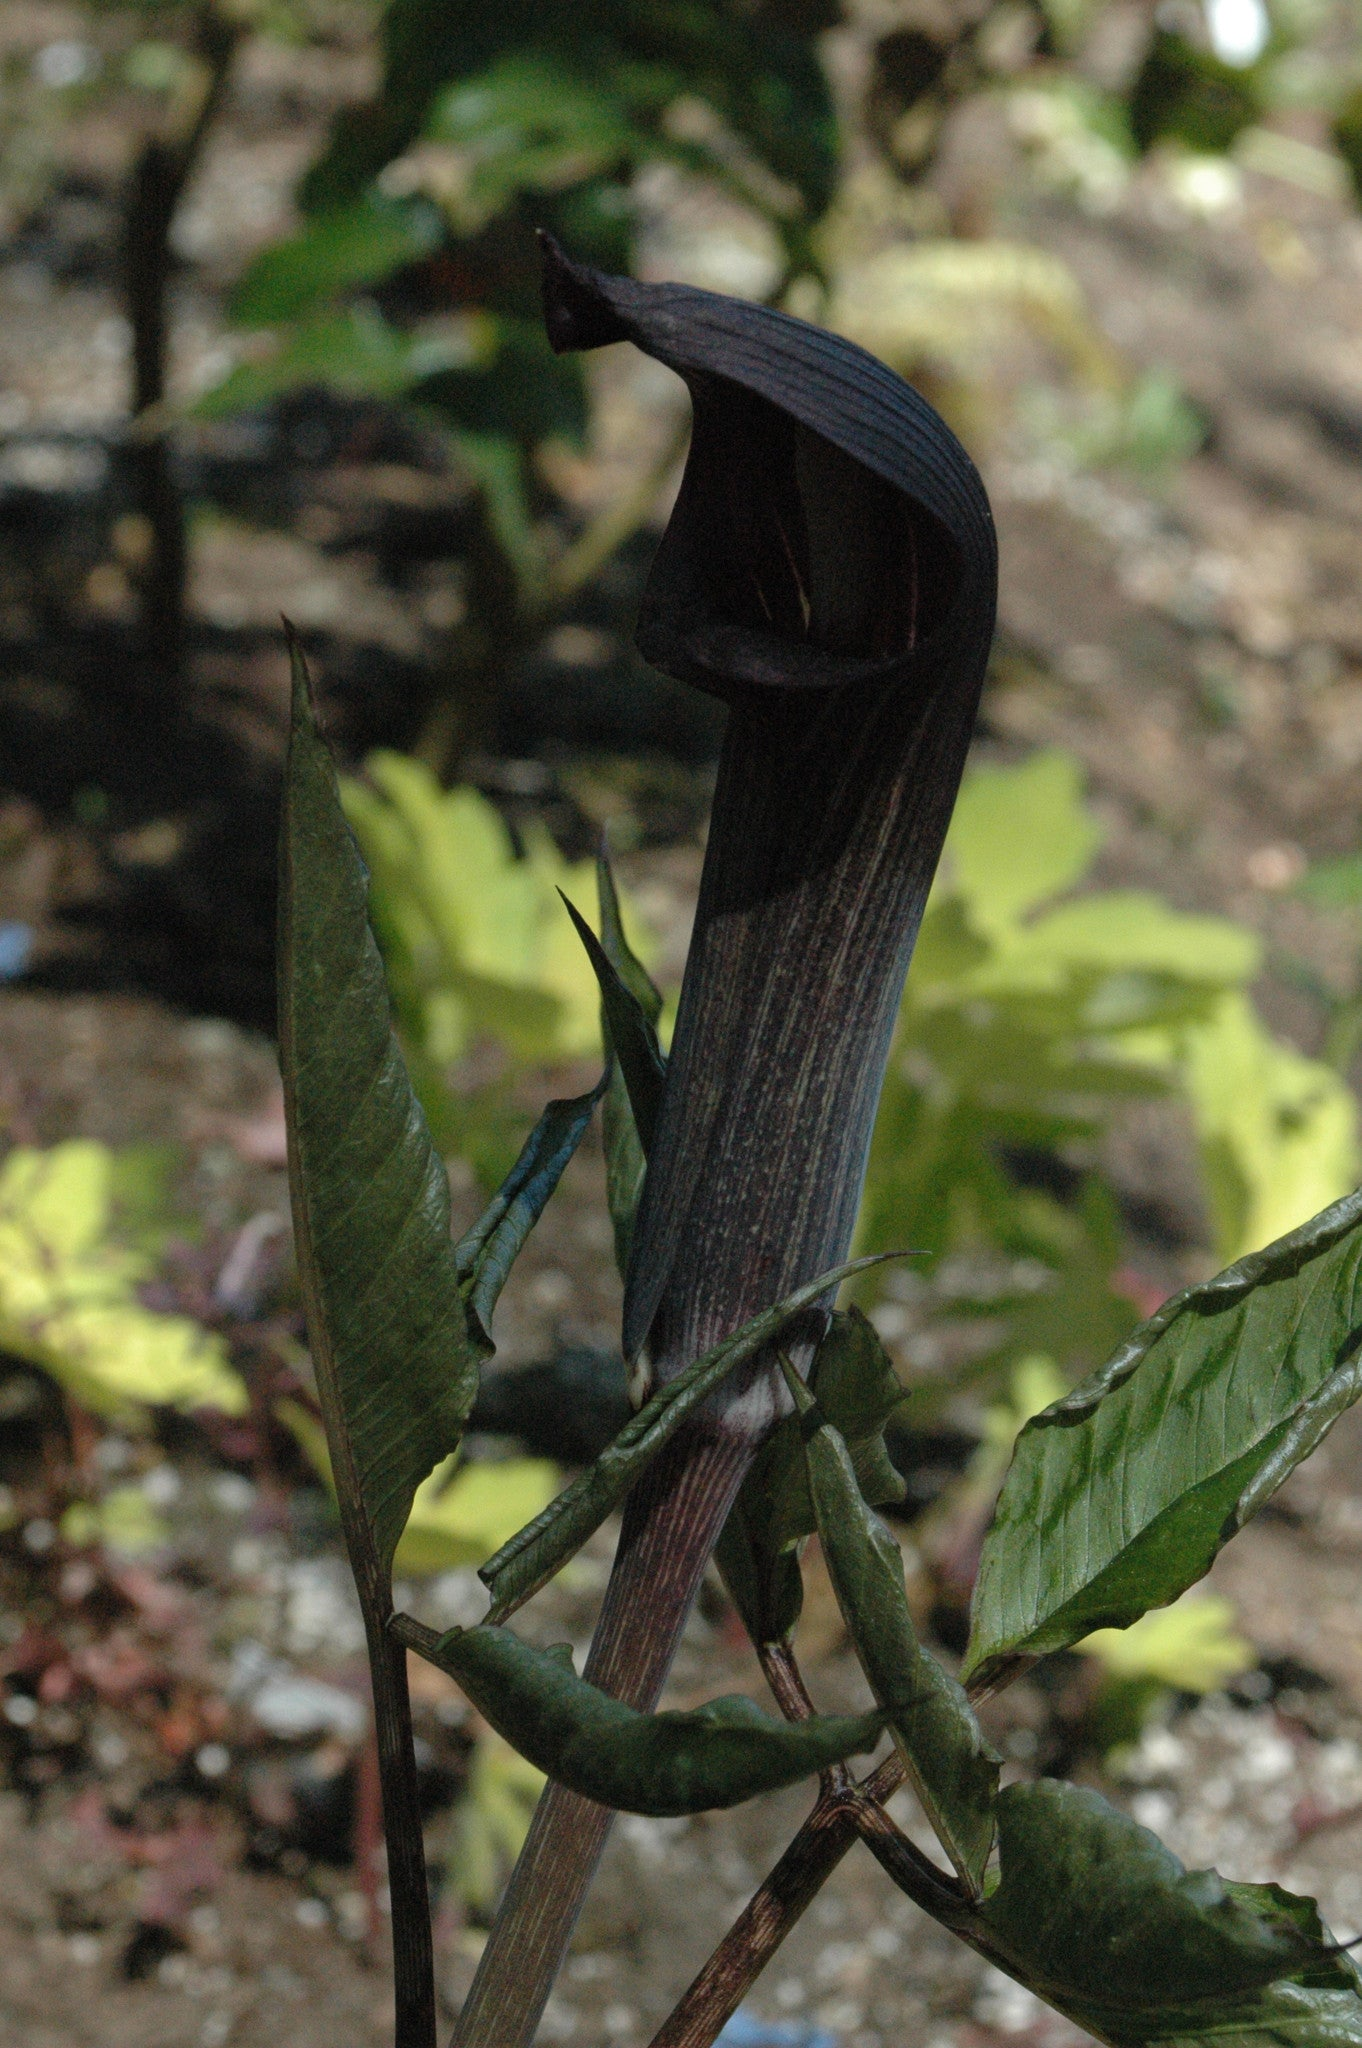 Arisaema mayebarae (Jack-in-the-Pulpit)